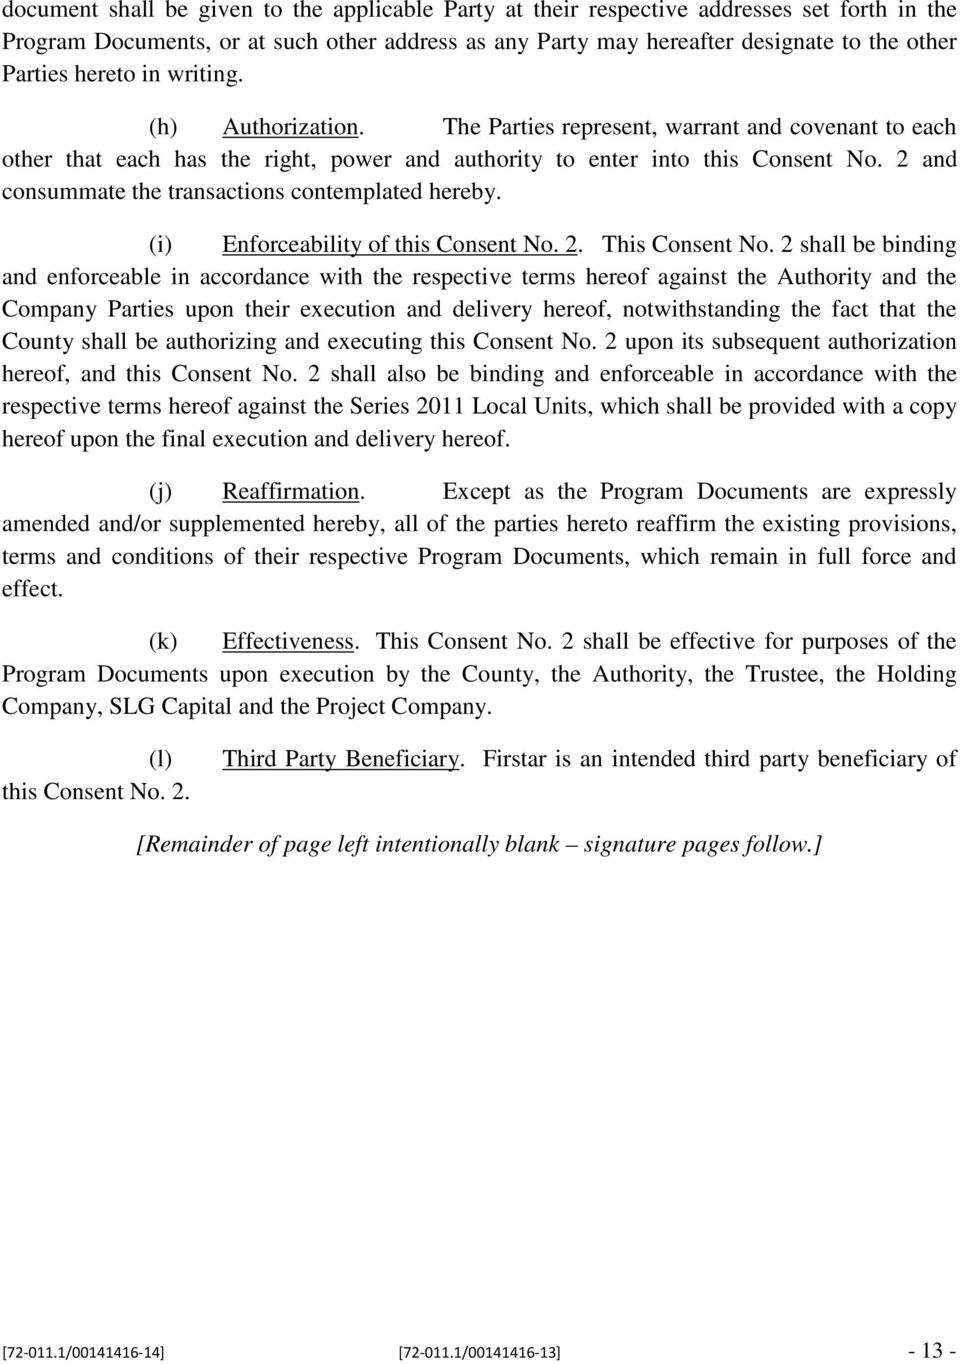 2 and consummate the transactions contemplated hereby. (i) Enforceability of this Consent No. 2. This Consent No.